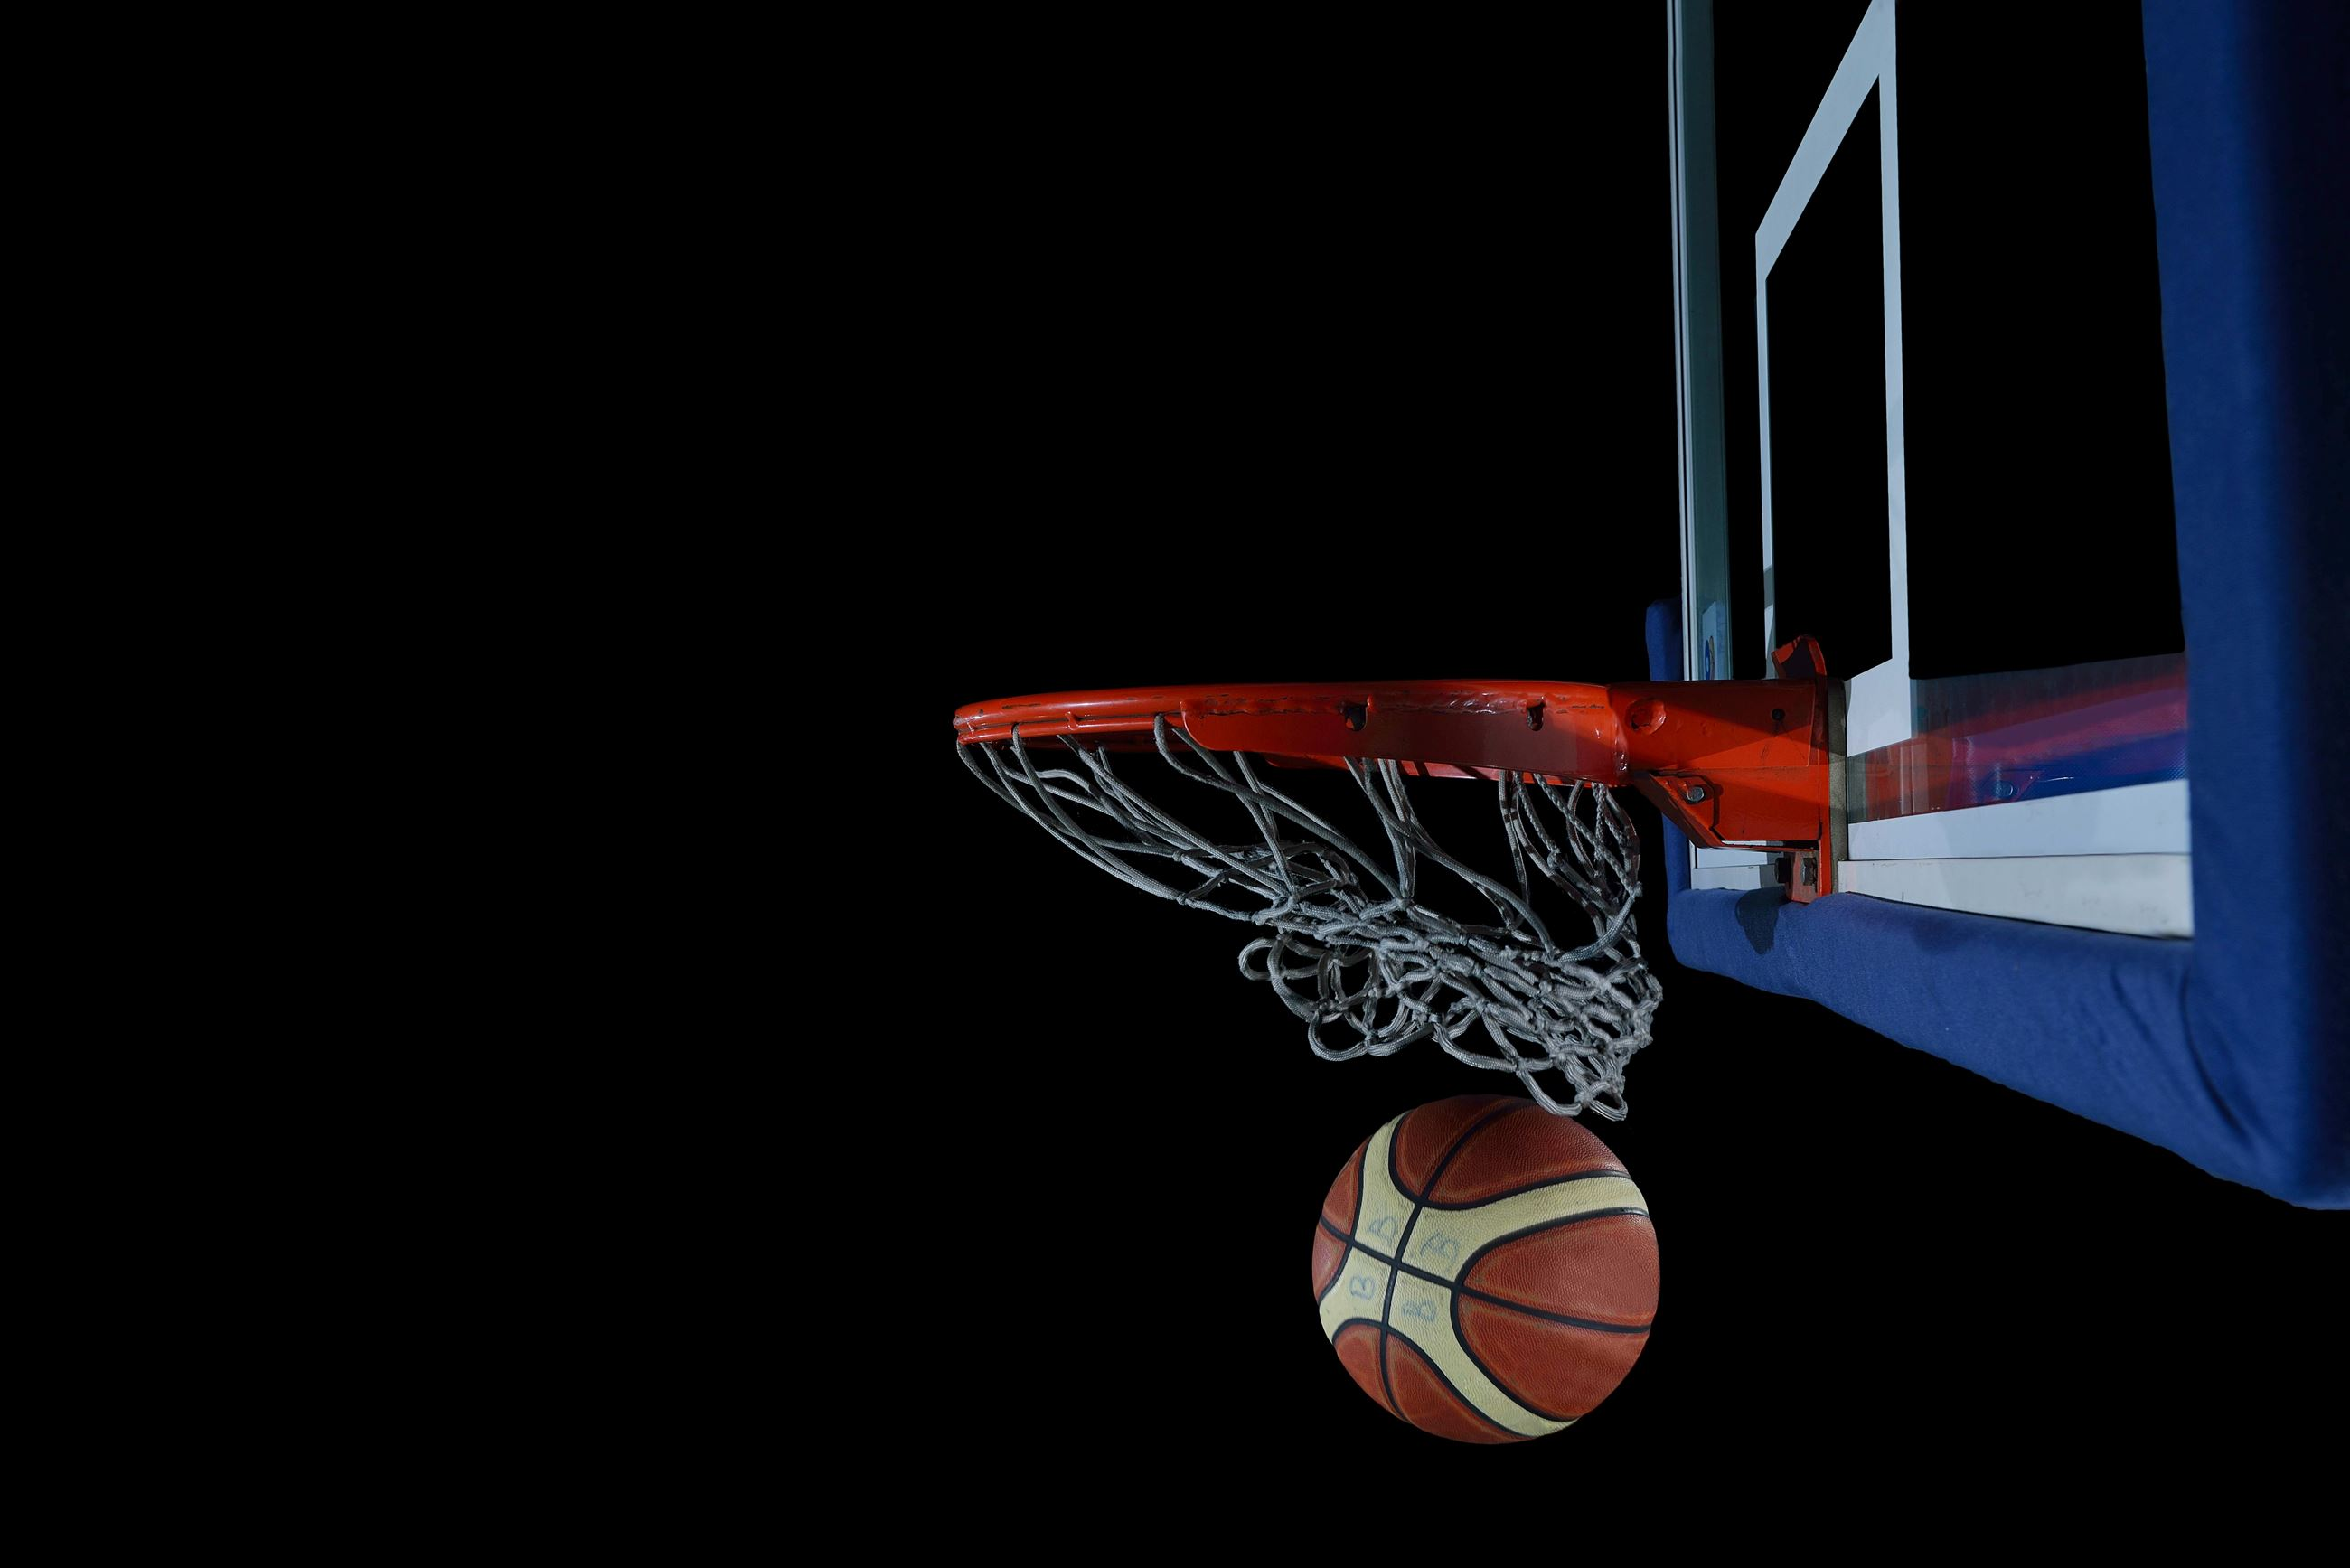 backboard-and-net-on-black-background-in-gym-indoor